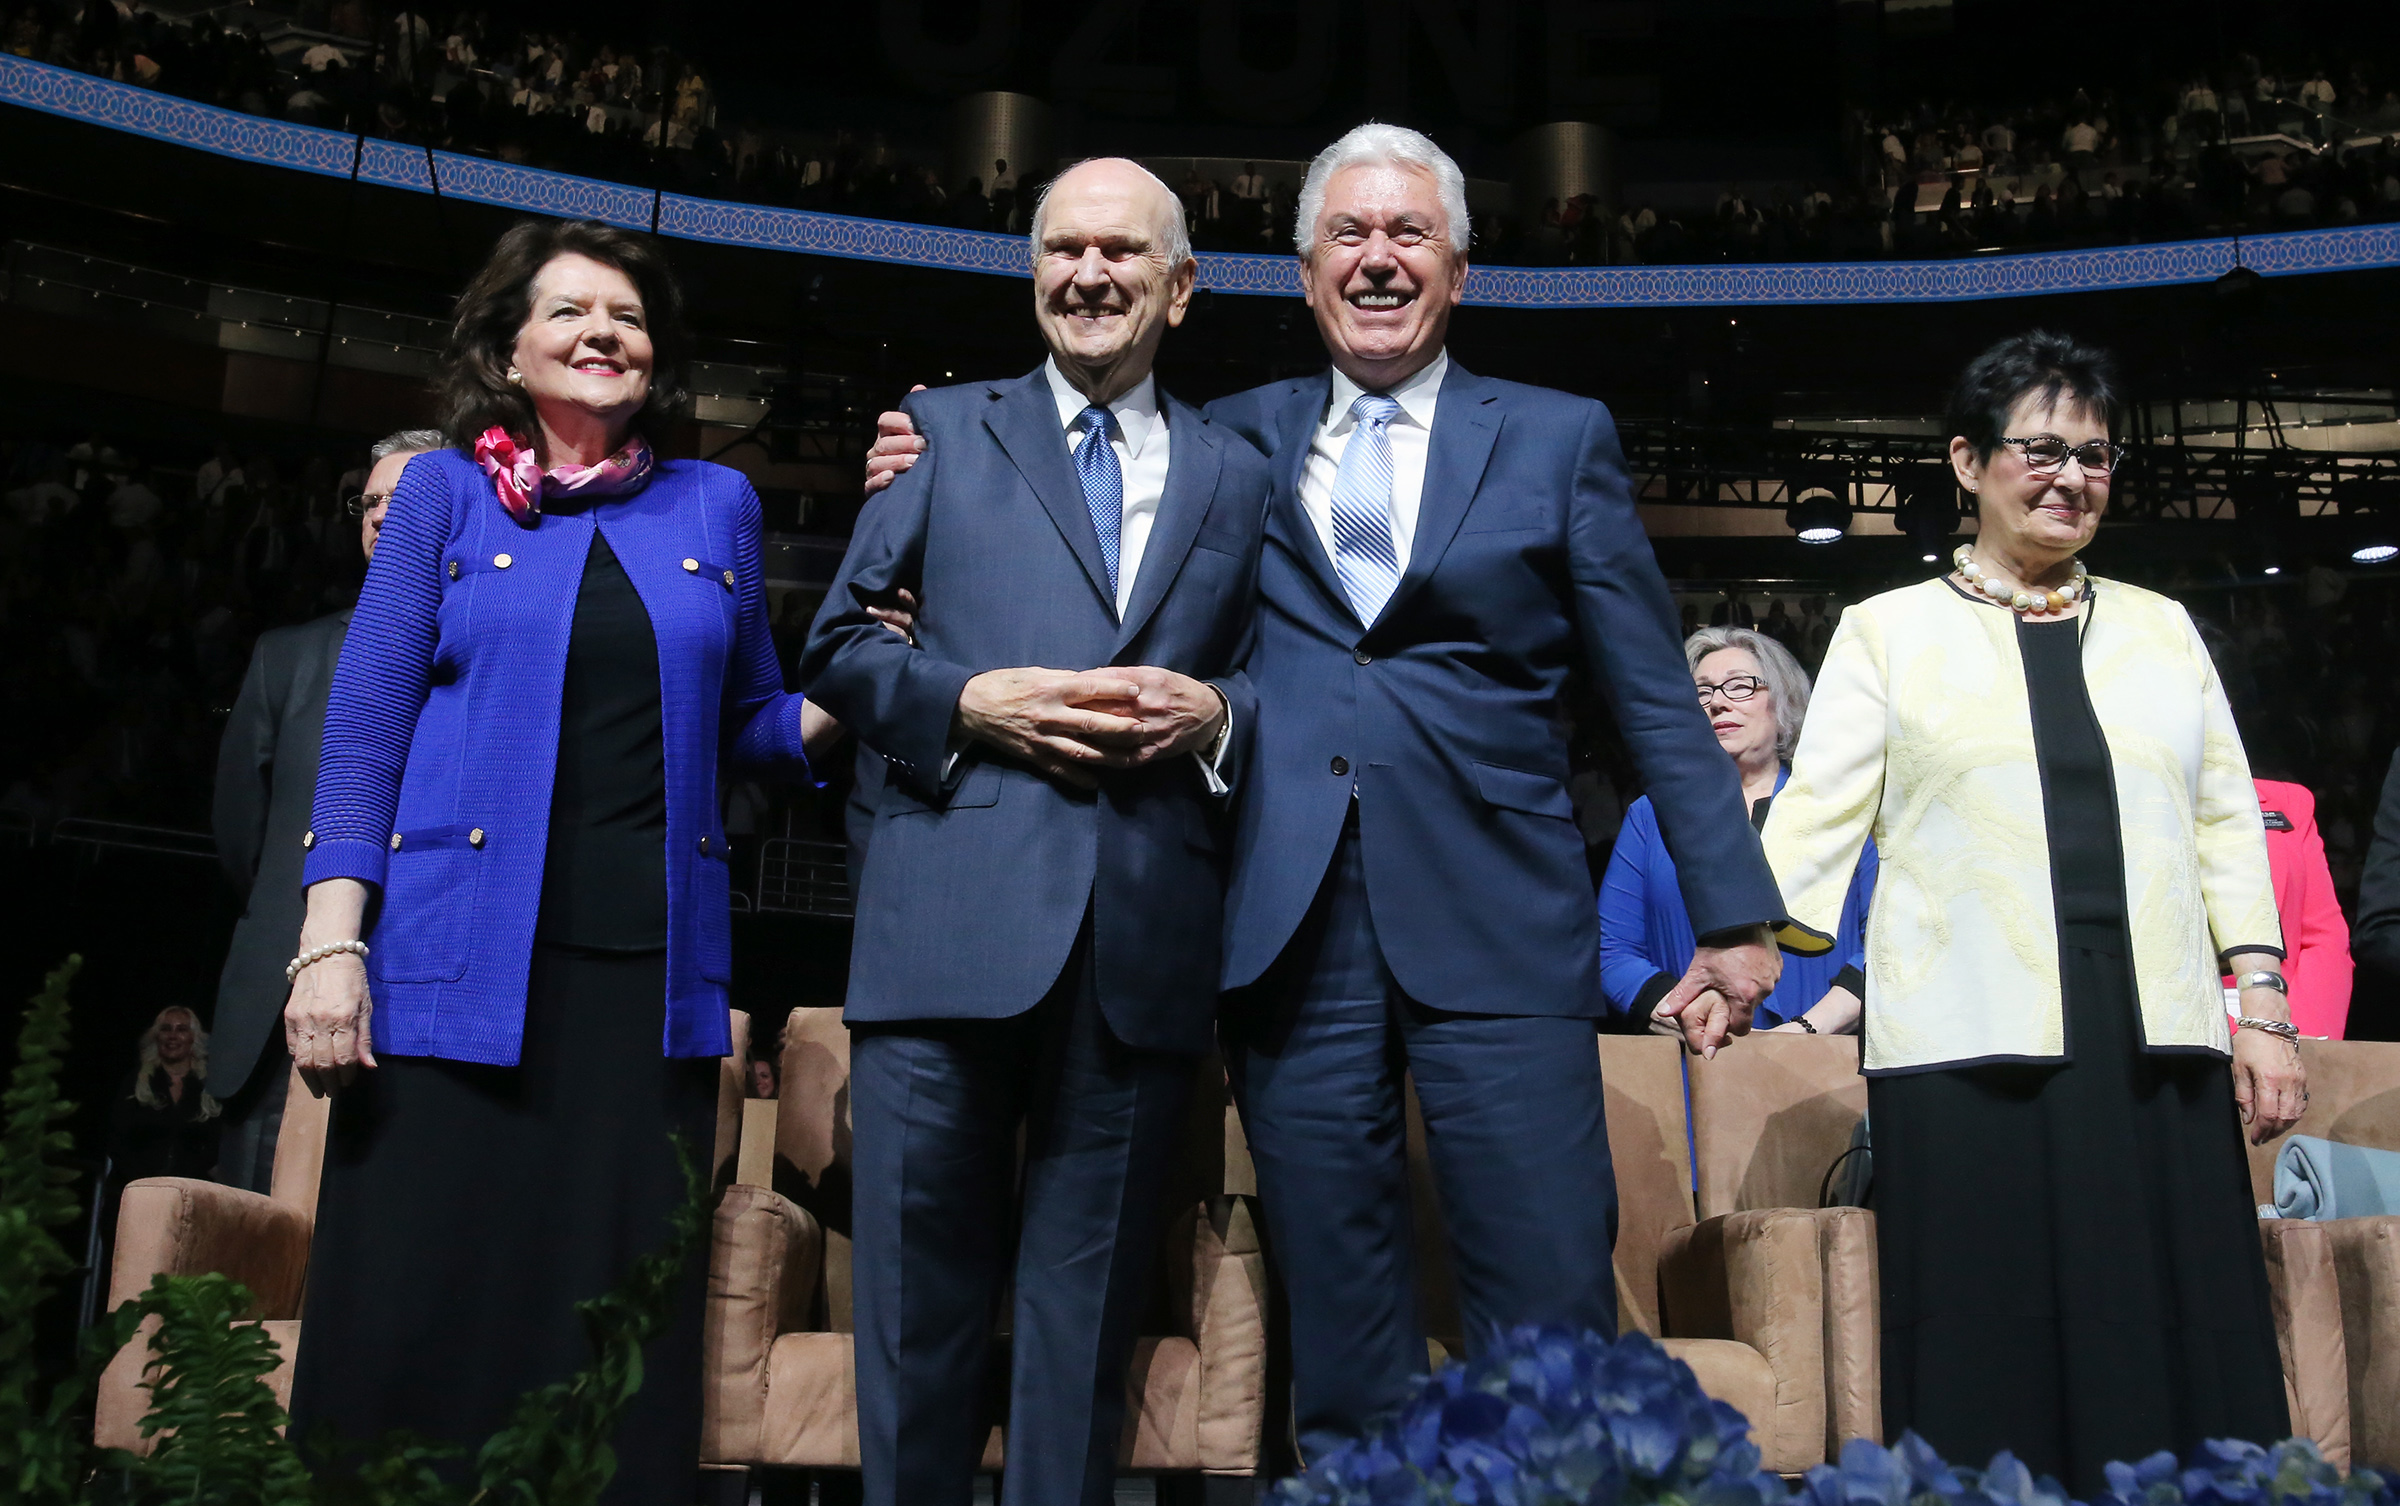 President Russell M. Nelson, is hugged by Elder Dieter F. Uchtdorf of the Quorum of the Twelve Apostles and they stand by the wives, Sister Wendy Nelson, left, and Sister Harriet Uchtdoft, right, following the June 9, 2019, devotional at the Amway Center in Orlando, Florida.